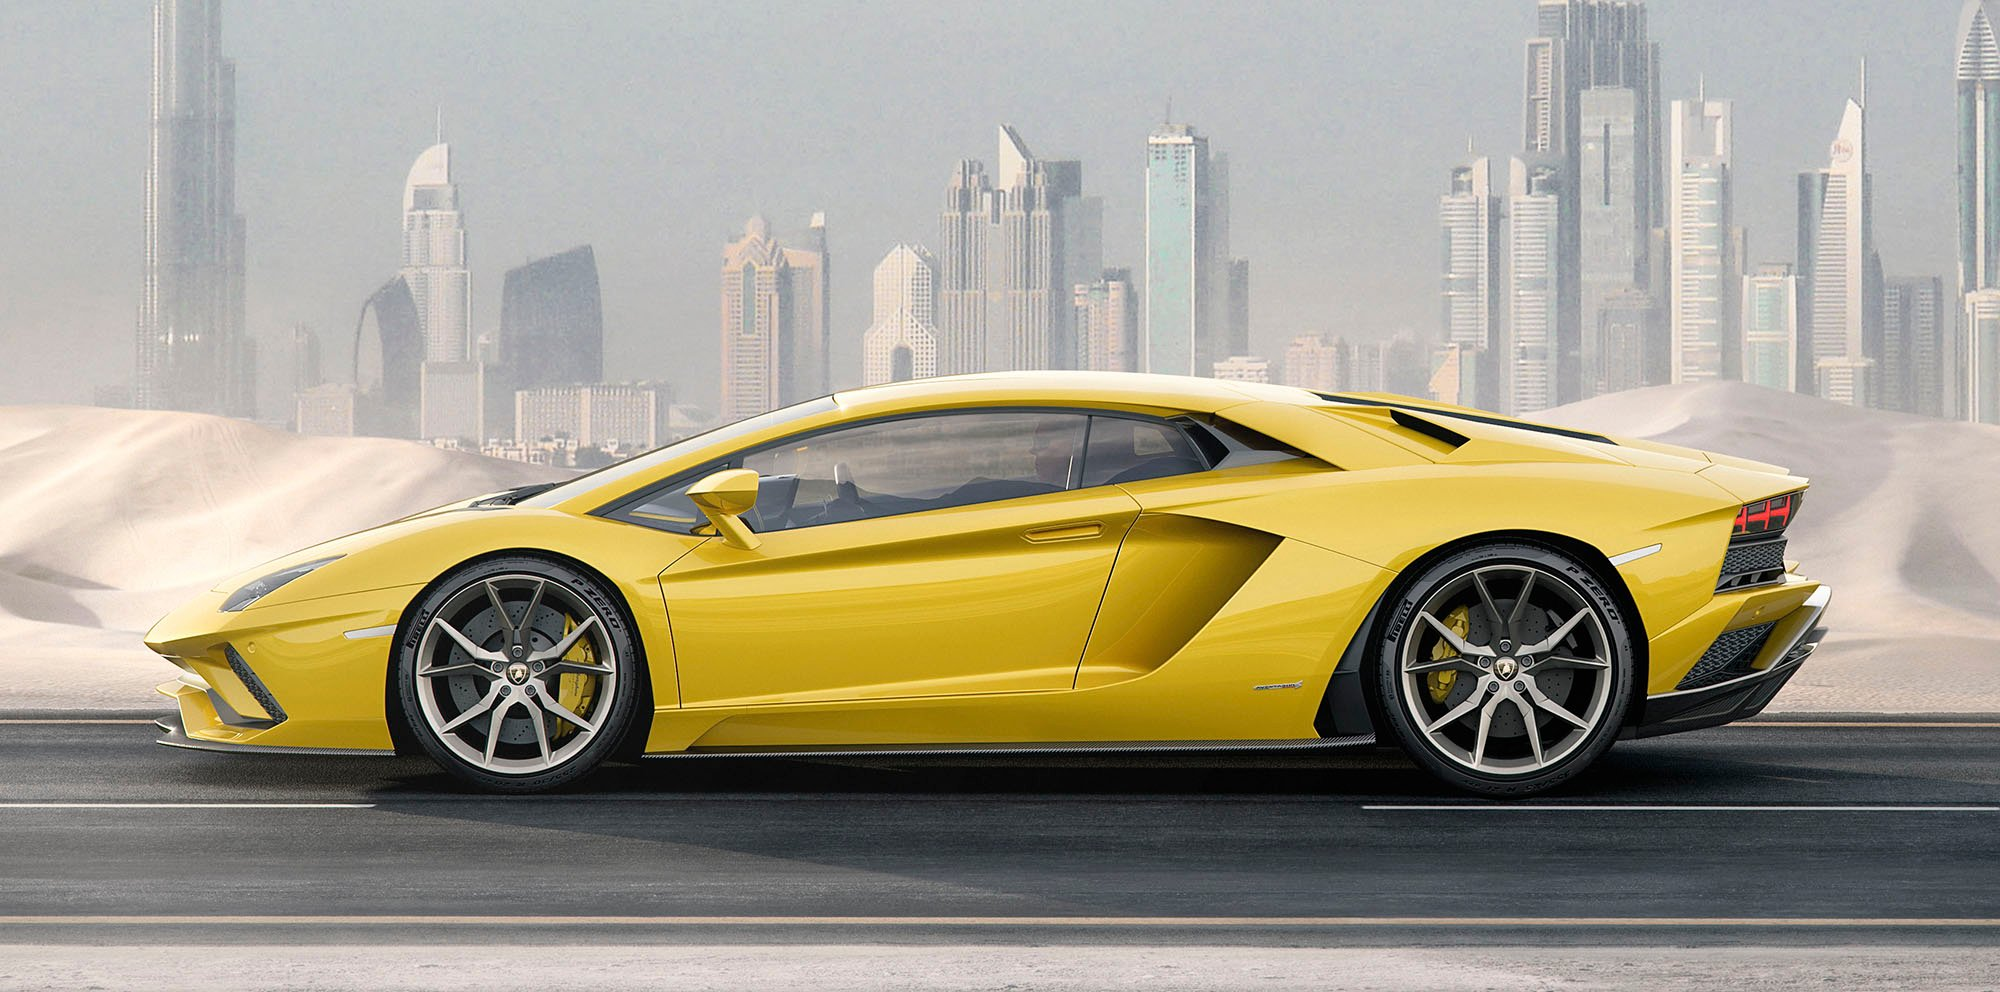 2017 Lamborghini Aventador S Revealed Australian Pricing Confirmed Facelifted Hero Gets More